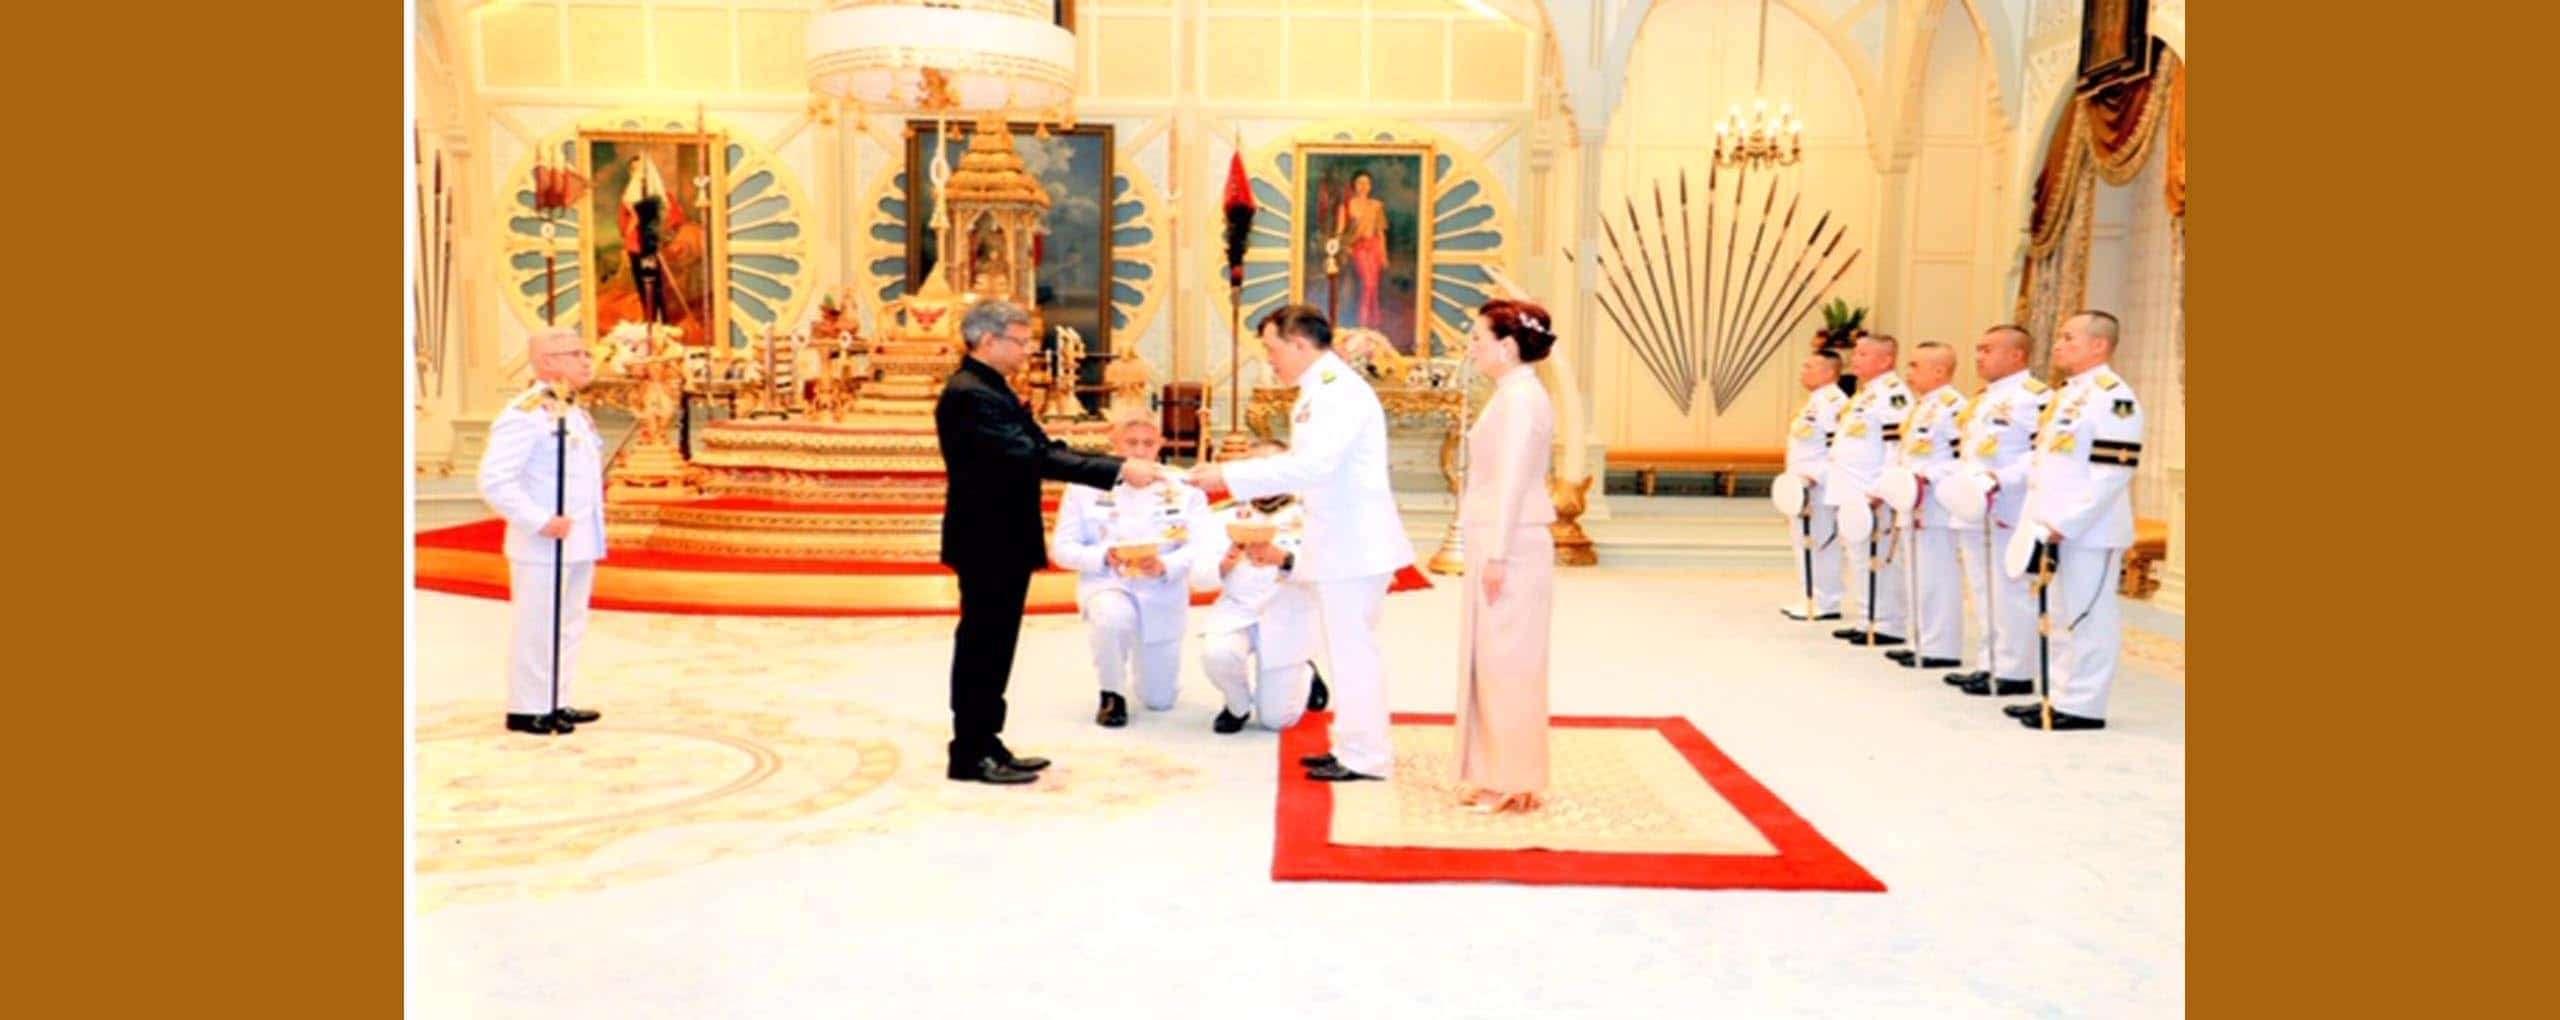 Ambasador of Bangladesh to the kingdom of Thailand H.E. Mr. Mohammed Abdul Hye  is presenting his Credential to His Majesty King of Thailand Maha Vajiralongkorn